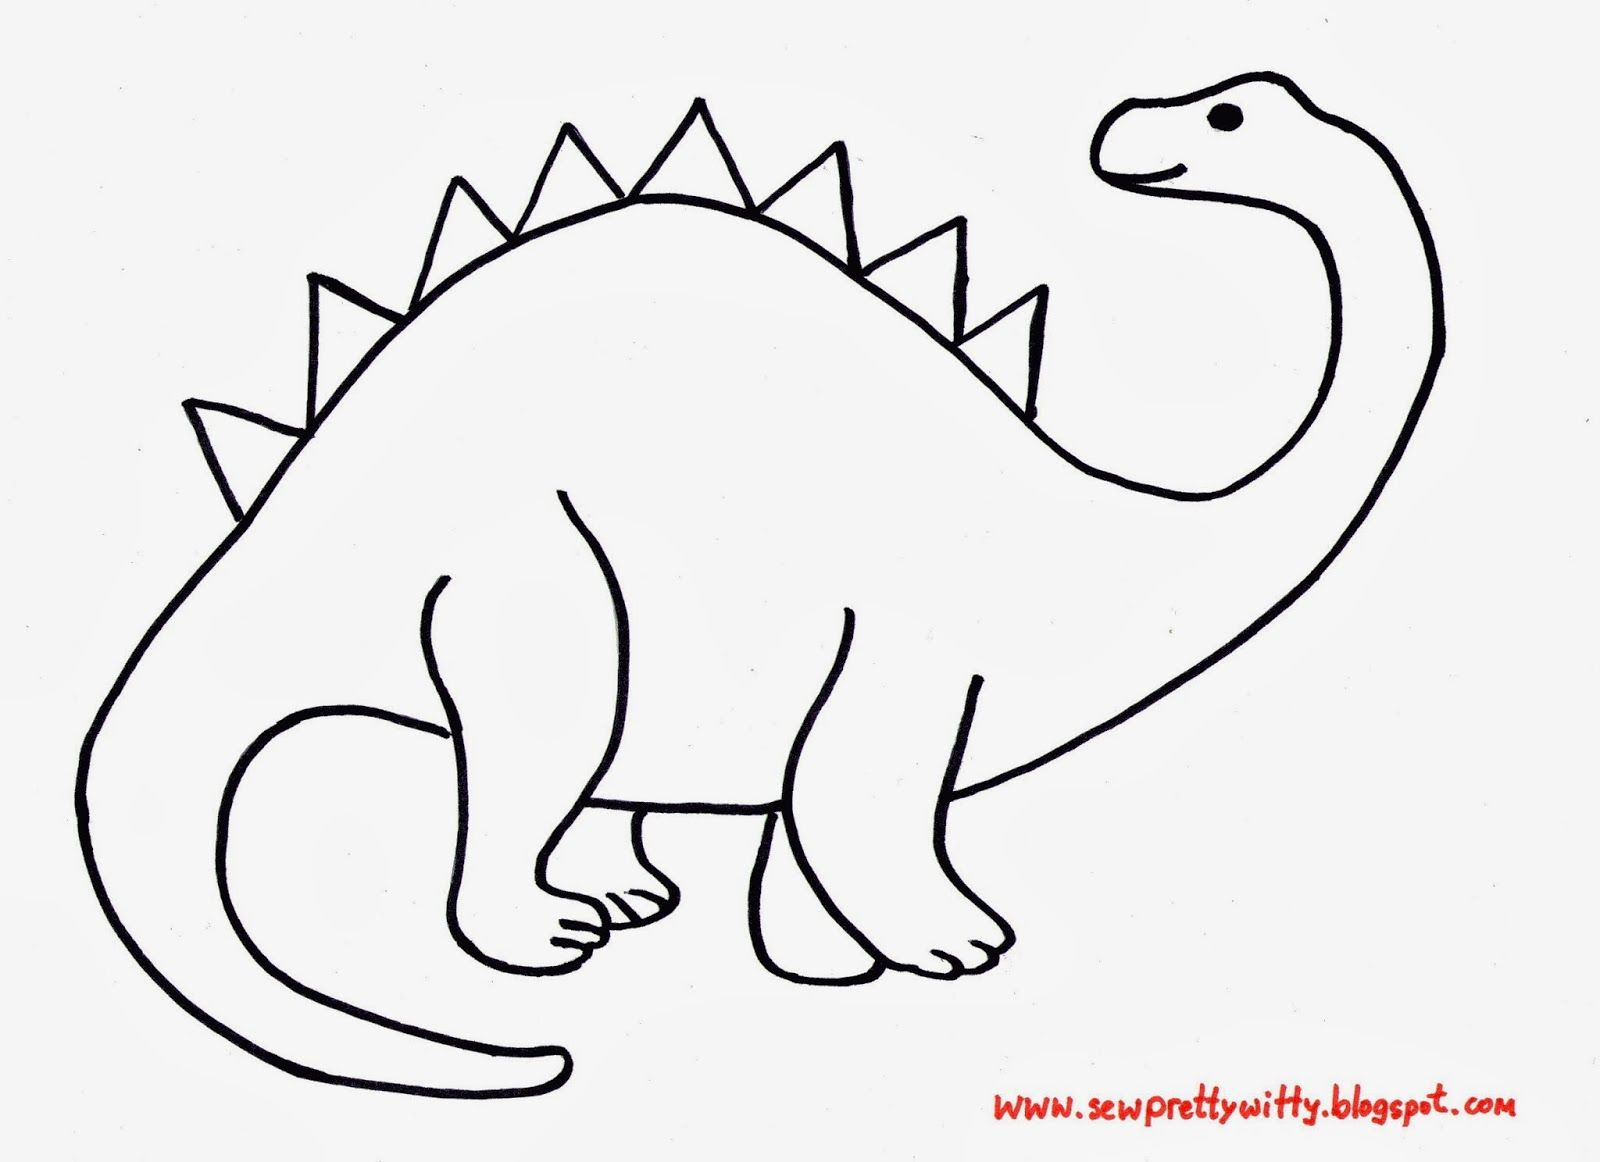 pin the tail on the dinosaur template - dinosaur applique template appliqu pinterest